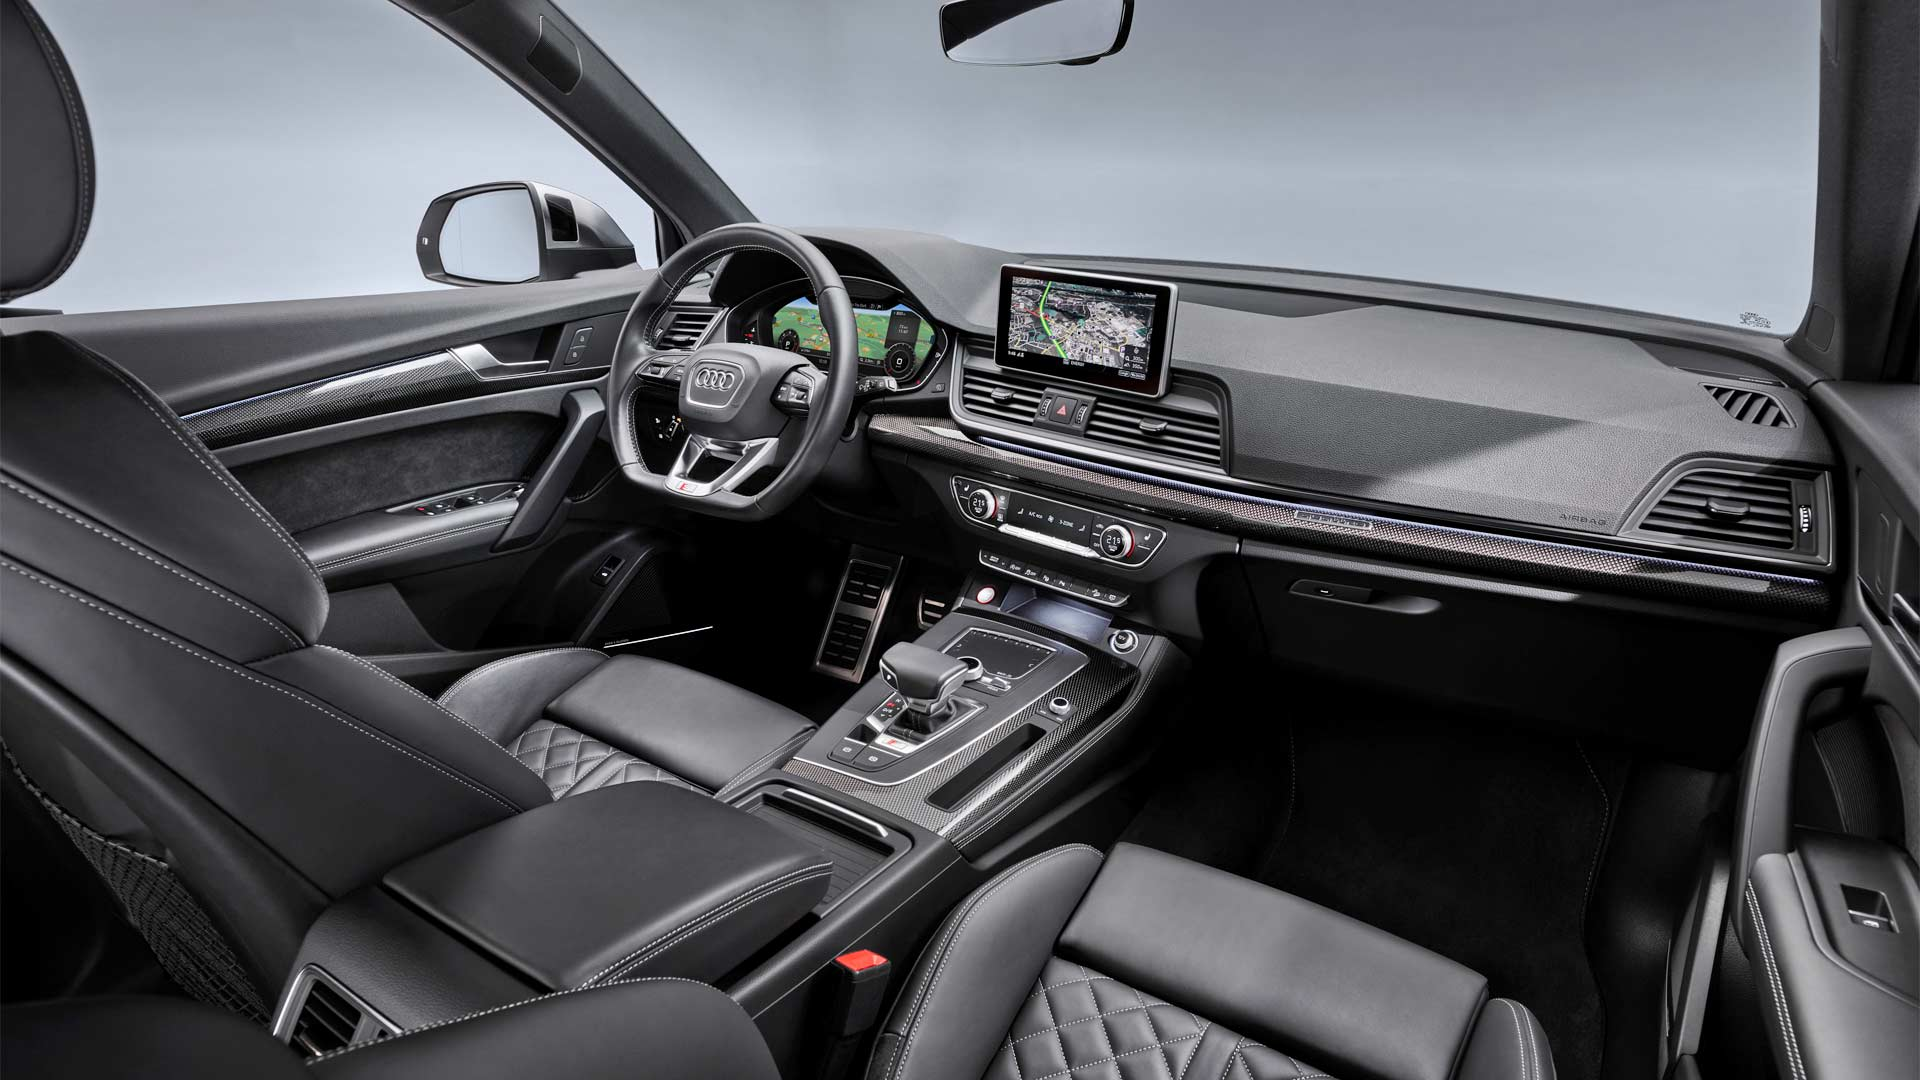 2019-Audi-SQ5-TDI-Interior_2